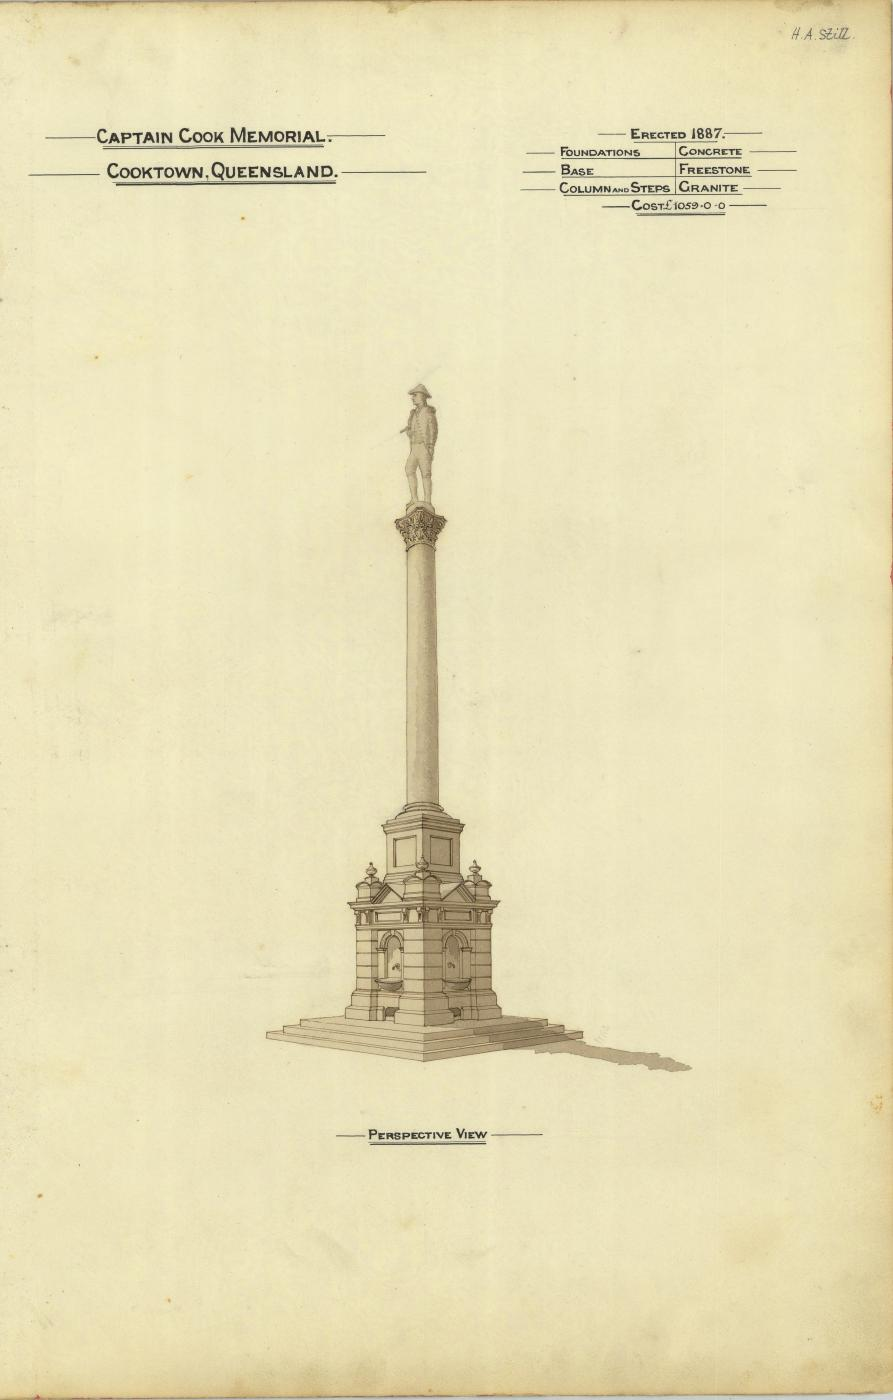 Perspective drawing of the Captain Cook Memorial, Cooktown